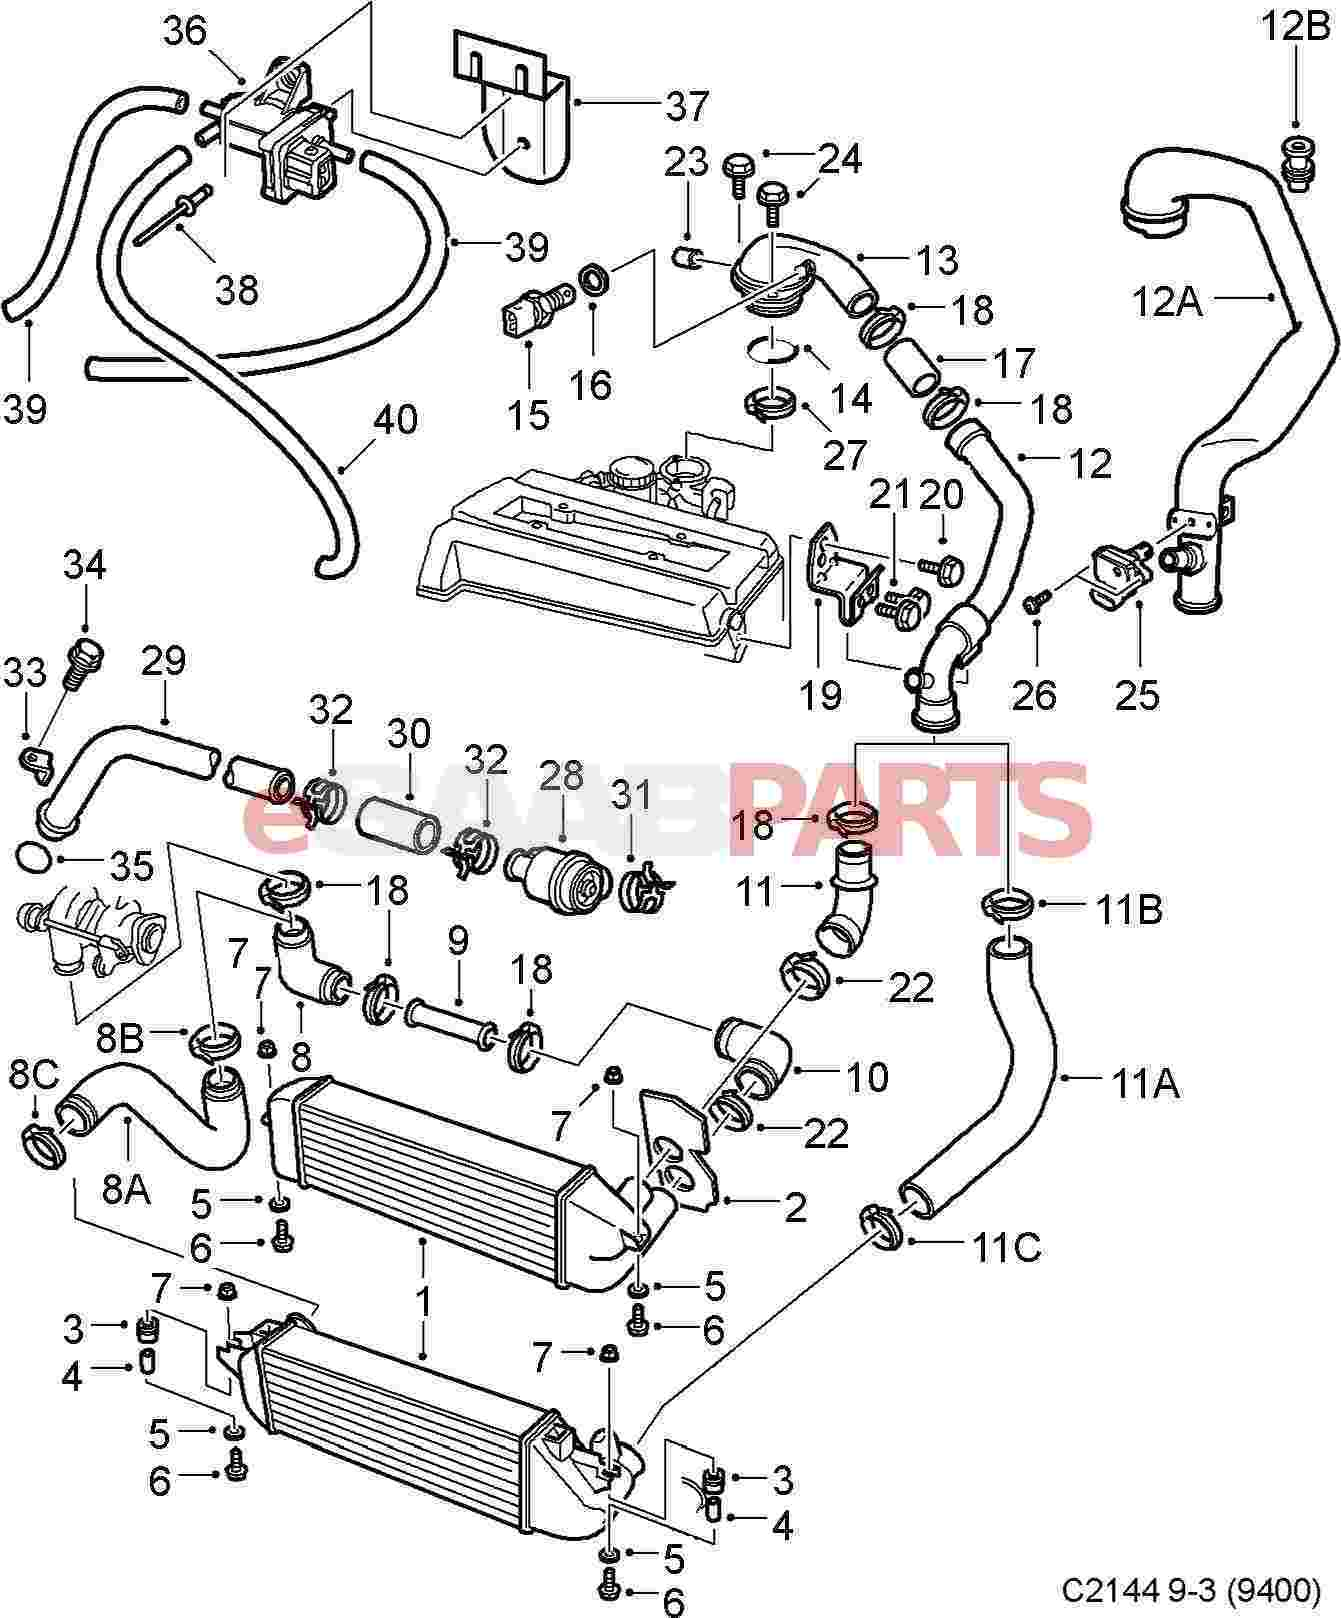 saab 900 turbo wiring diagram html imageresizertool com saab engine coolant #11